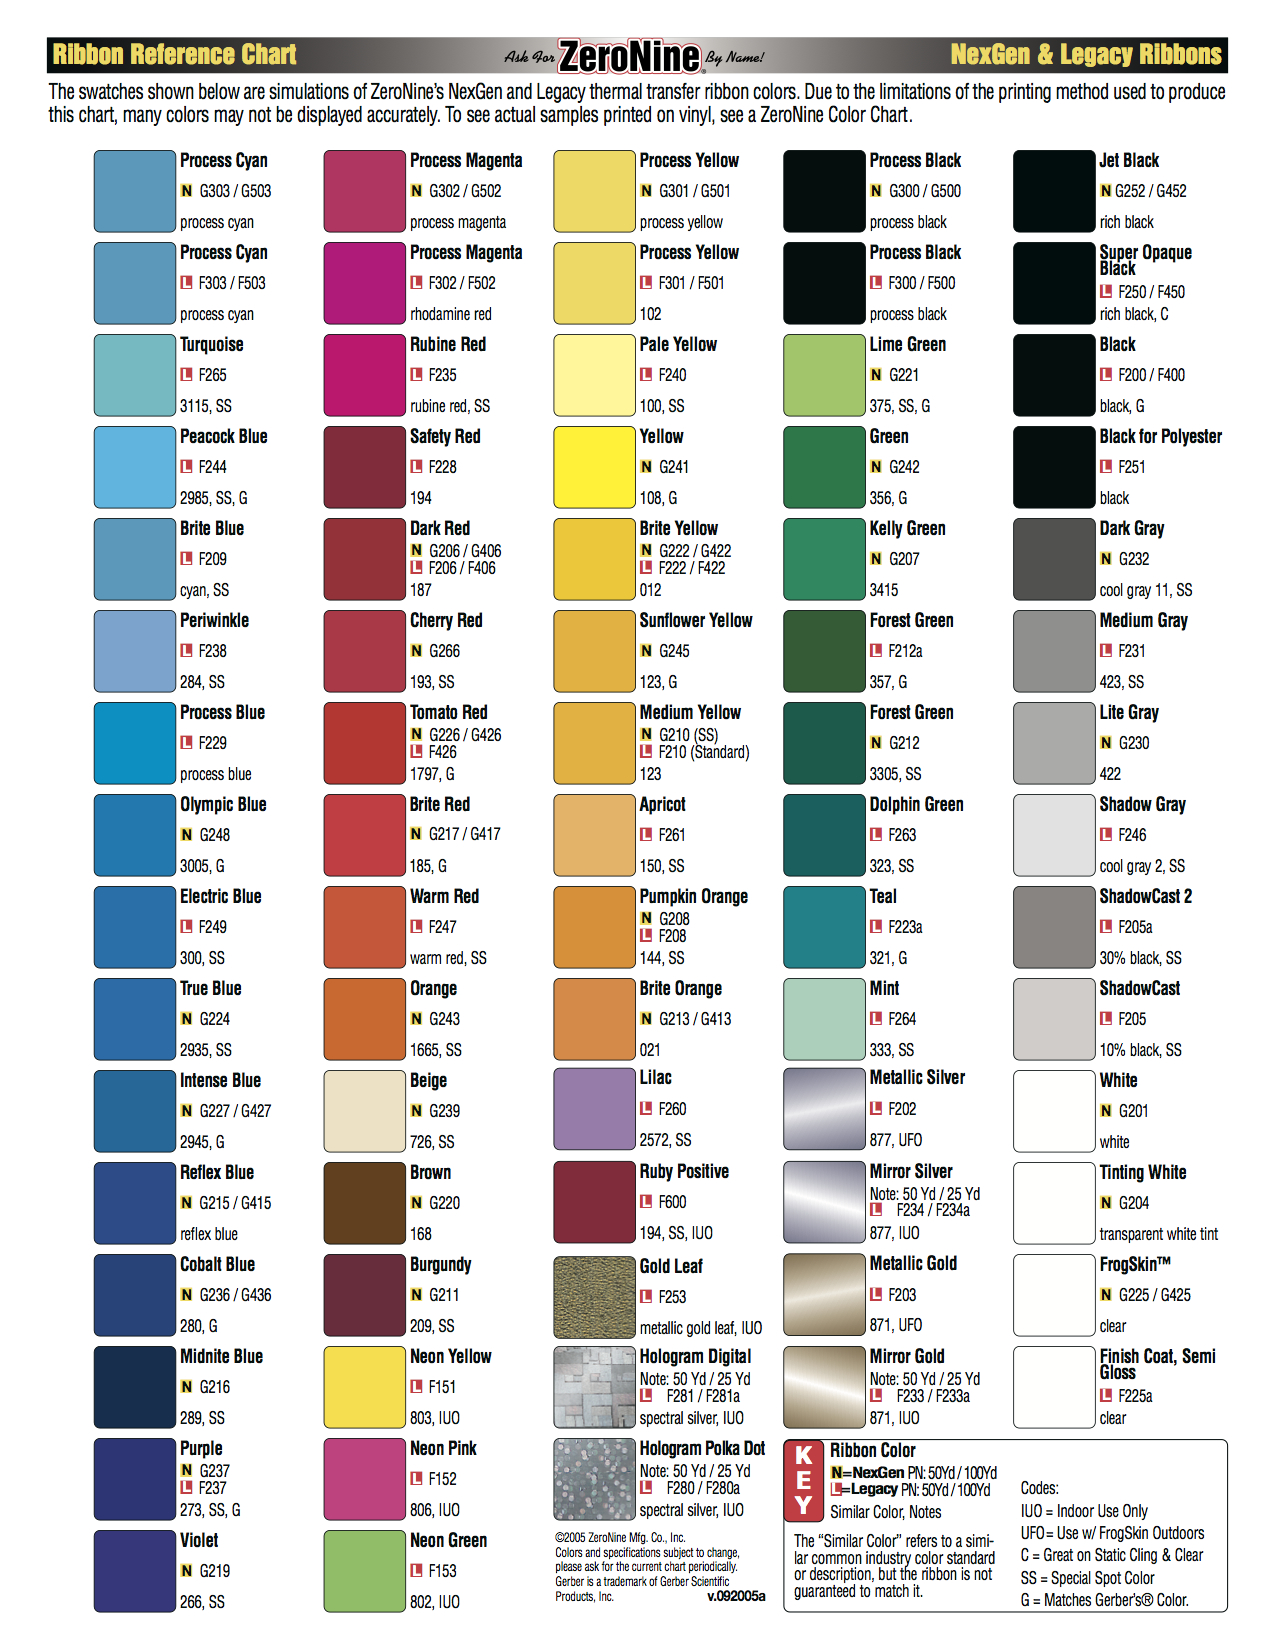 Imron marine paint color chart dupont imron marine paint color chart nvjuhfo Choice Image